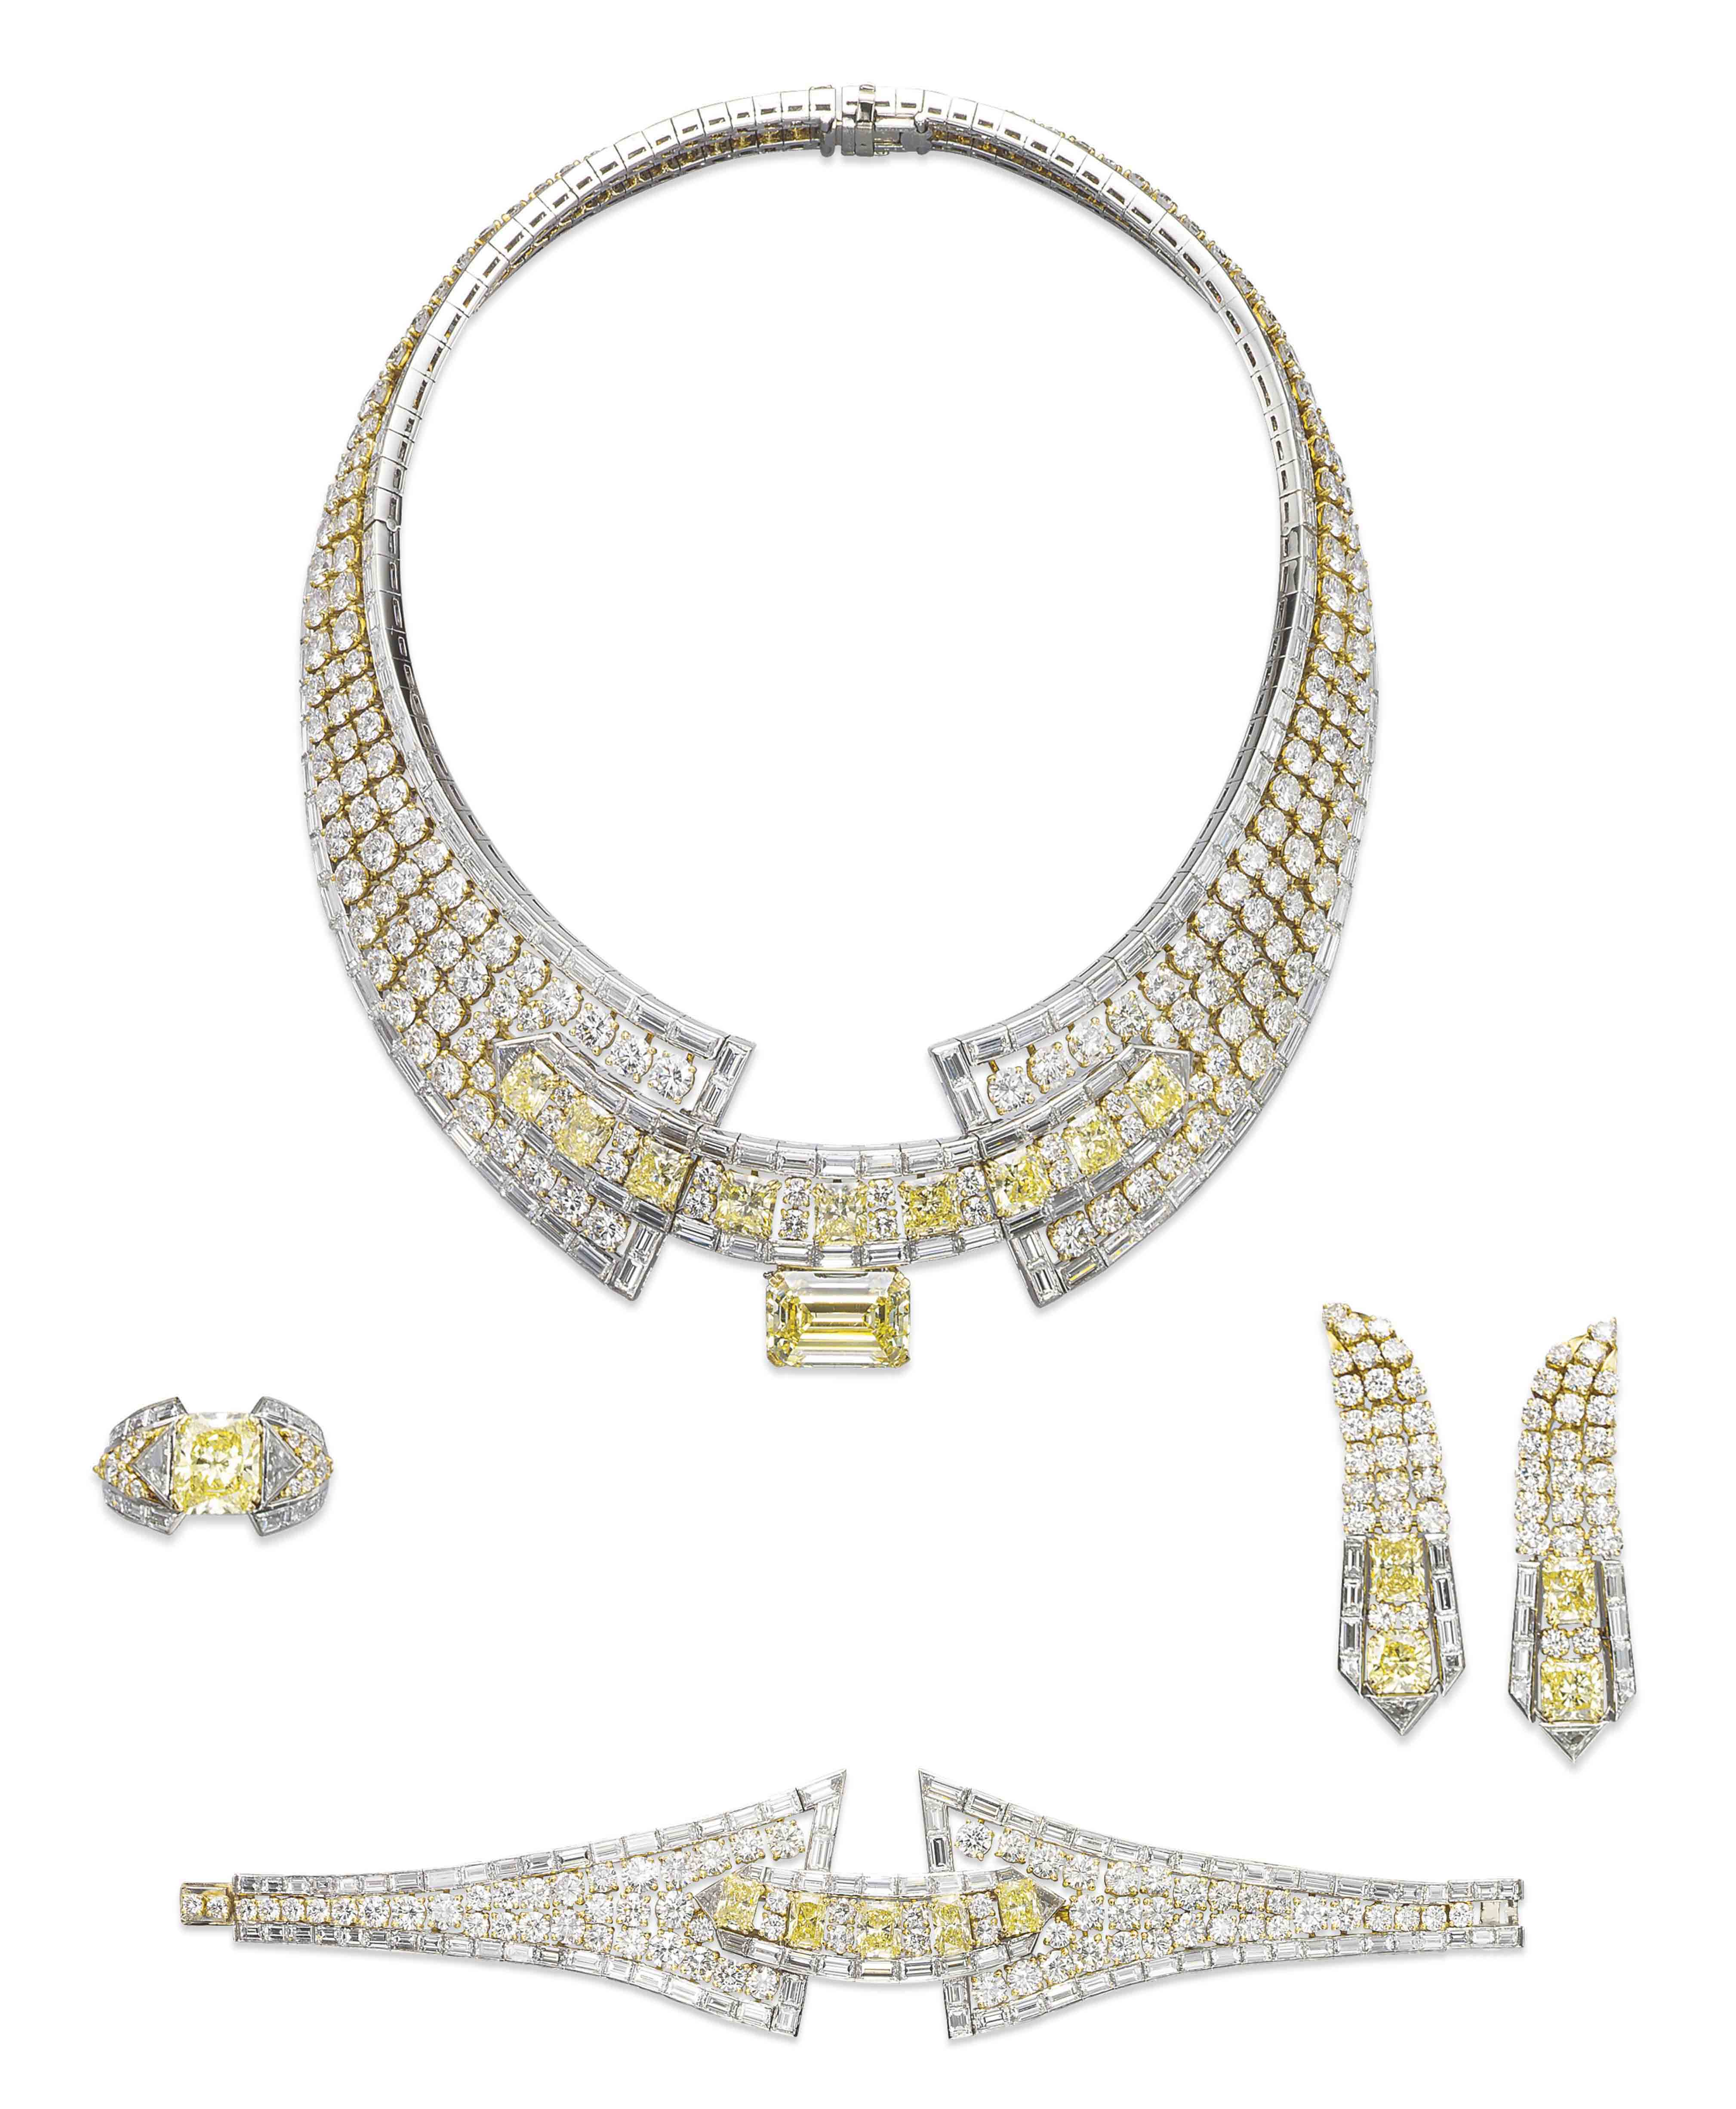 A COLOURED DIAMOND AND DIAMOND SUITE, BY MOUAWAD